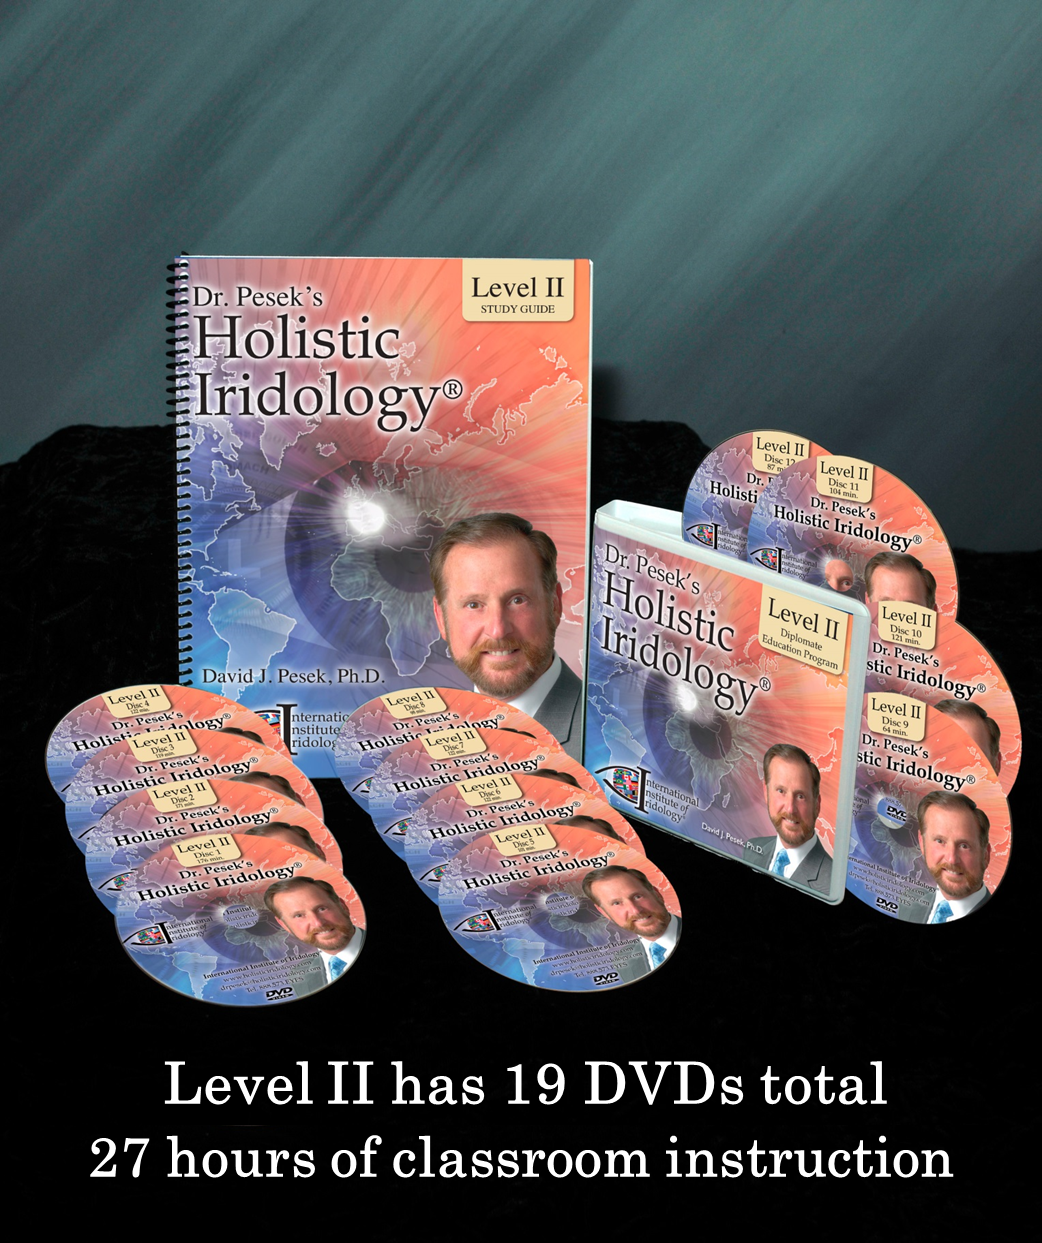 Dr. Pesek's Holistic Iridology Level II Intermediate Seminar has 19 DVDs total for 27 hours of classroom instruction.